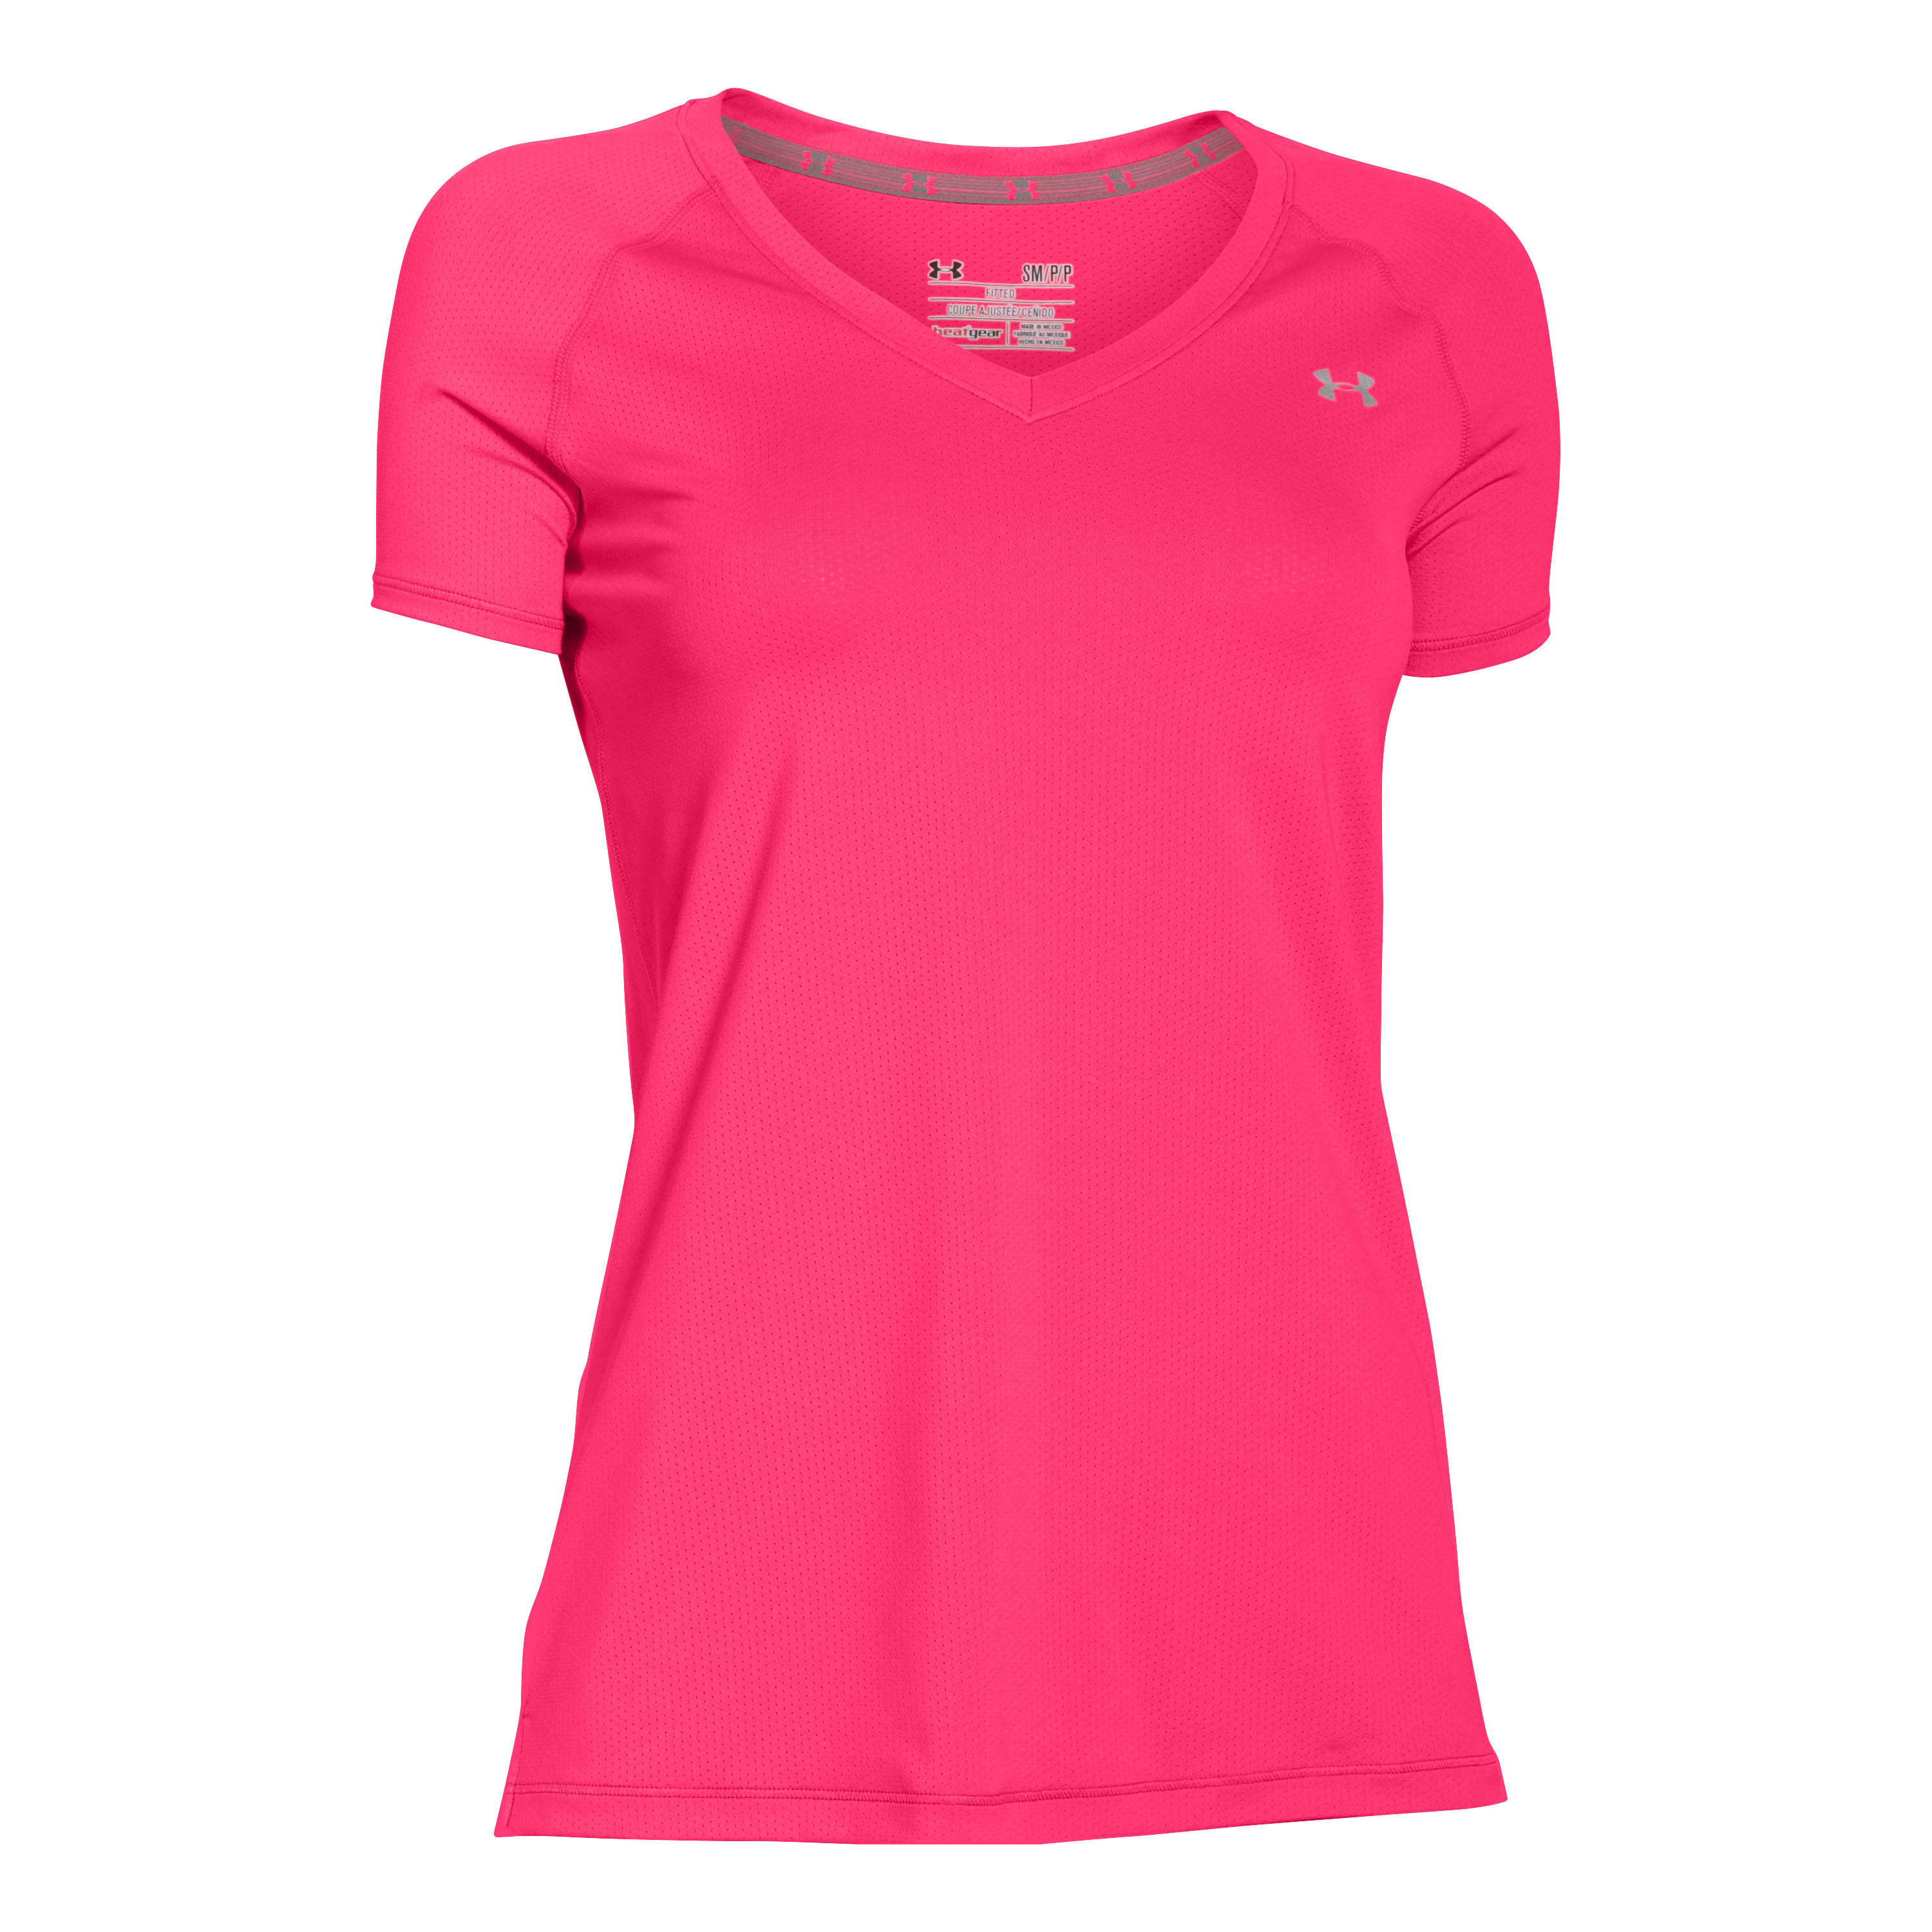 Under Armour Women T-Shirt HeatGear Armour pink